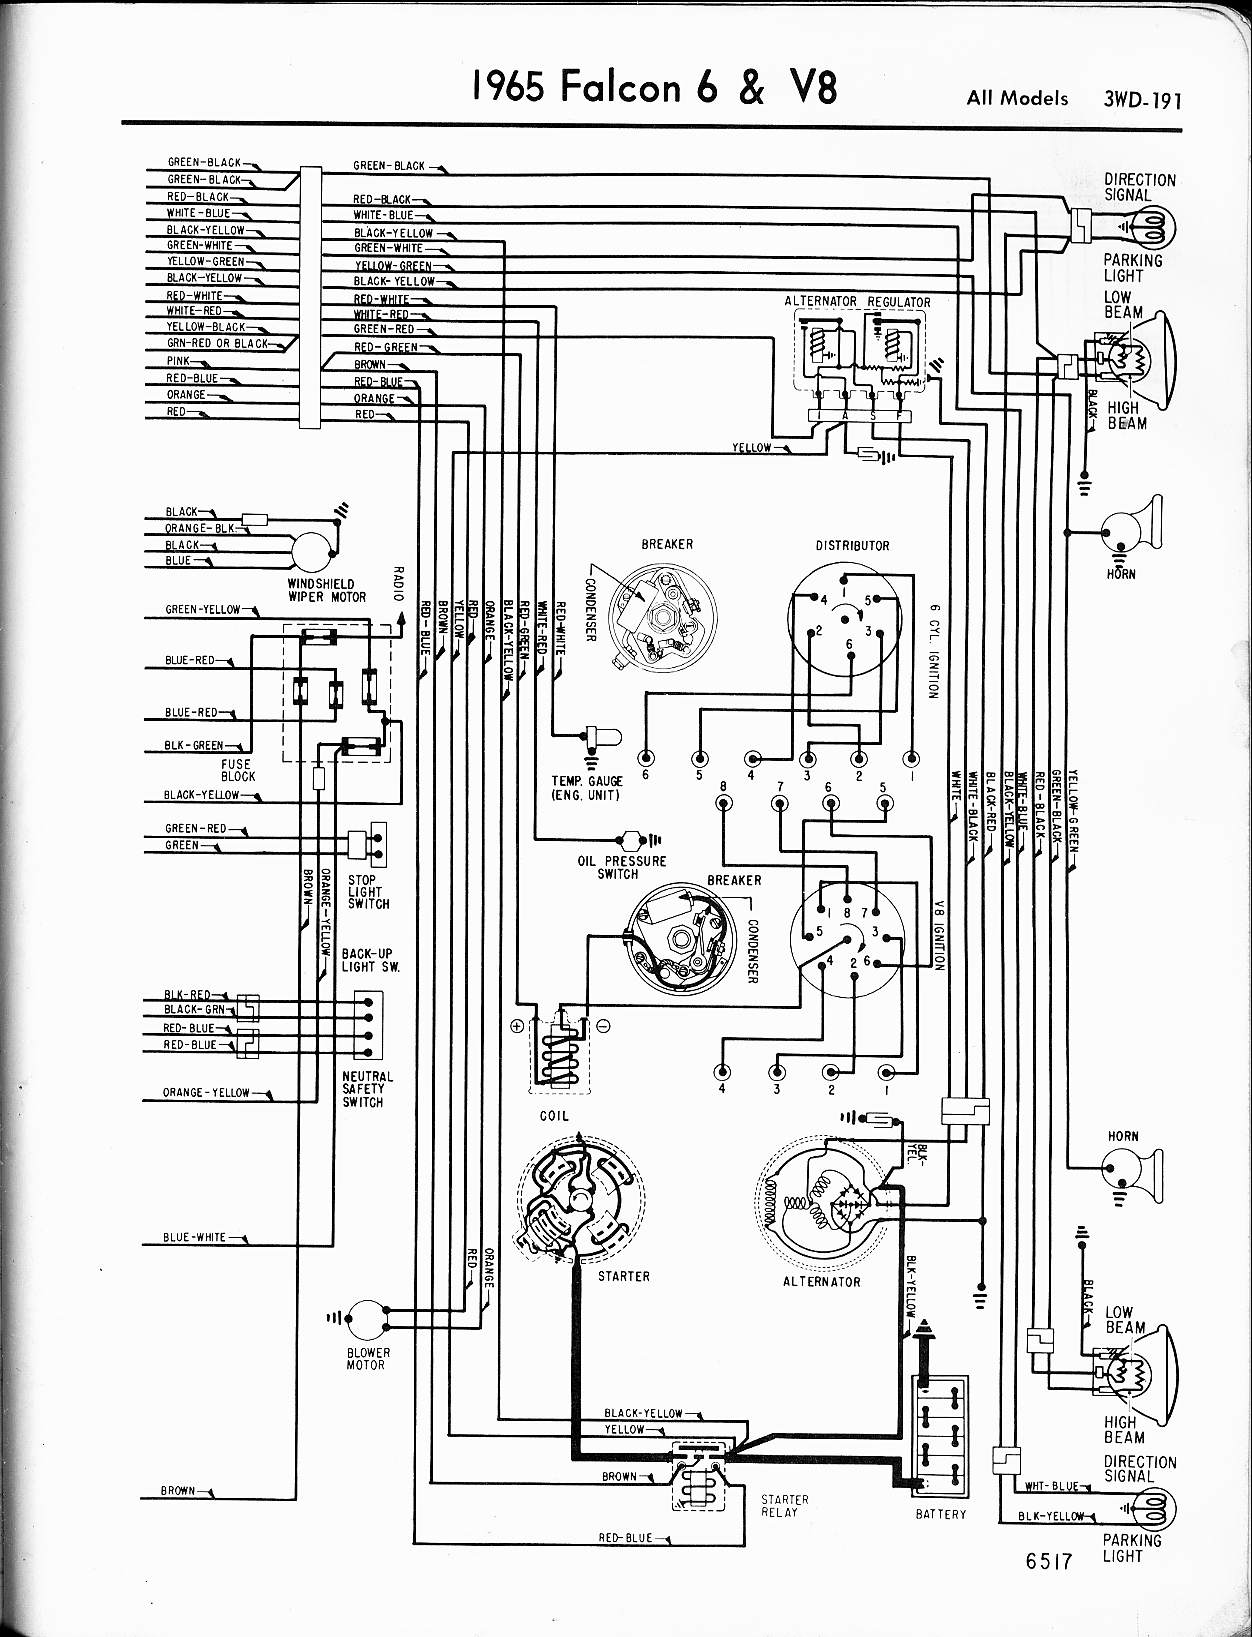 65 lincoln ignition wiring diagram with A 1966 Ford Ranchero Wiring on 687009 Electrical Gremlins Front Running Lights Turn Signals Ammeter Question additionally 733146 64 5 Under Dash Harness Questions moreover 85 Ford 150 351 Alternator Wiring Diagram furthermore 1965 Mustang Wiring Diagrams in addition 63 T Bird Restoration Wiring Diagrams.